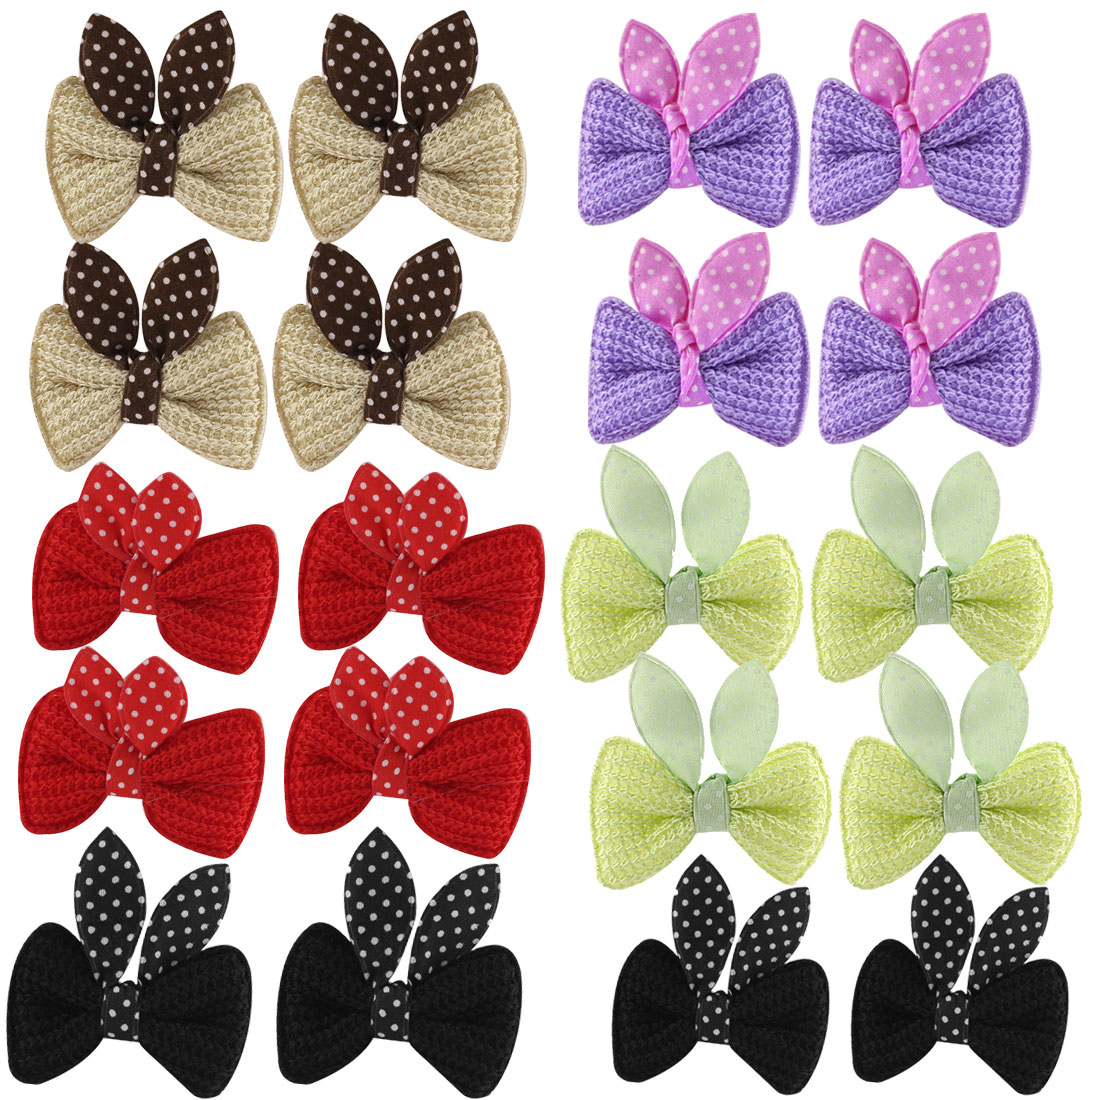 10 Pairs Girls Bowknot Decor Alligator Clip Hair Pin Barrette 5 Colors